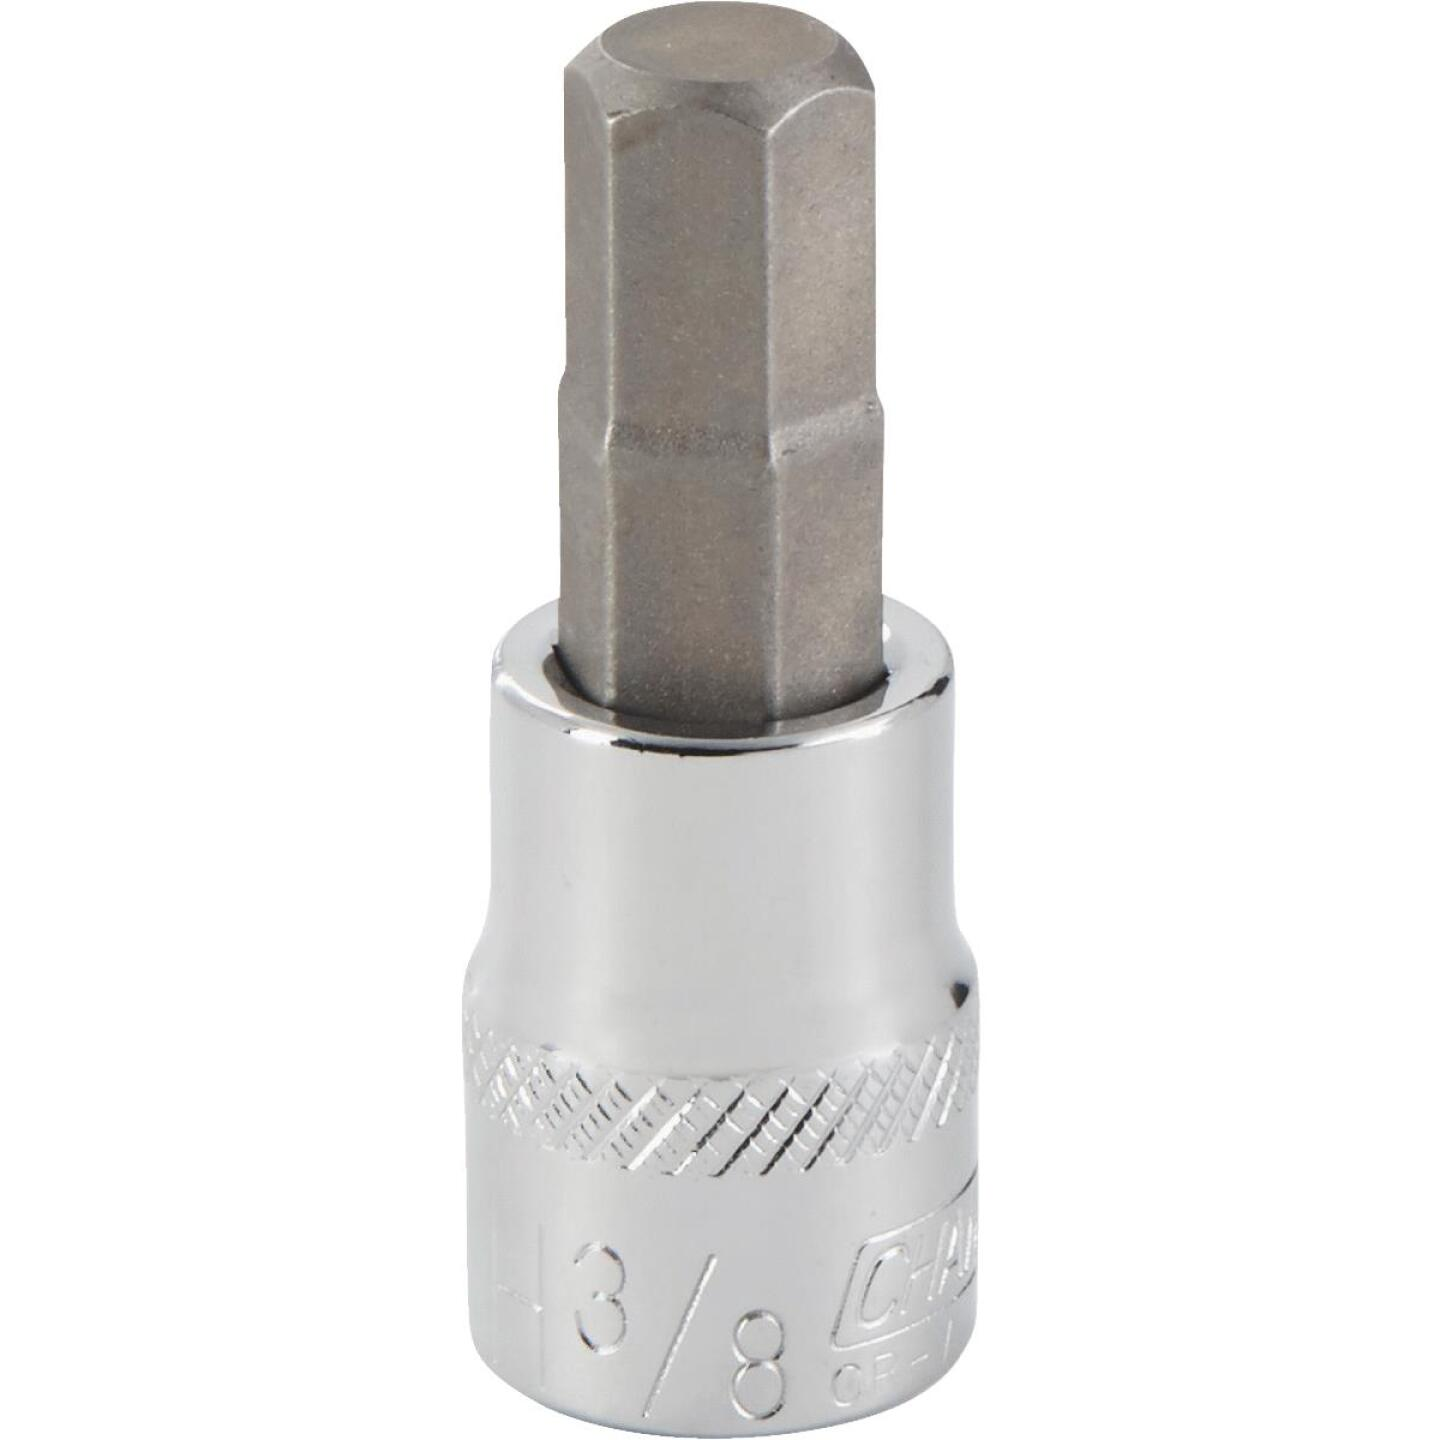 Channellock 3/8 In. Drive 3/8 In. 6-Point Standard Hex Bit Socket Image 1